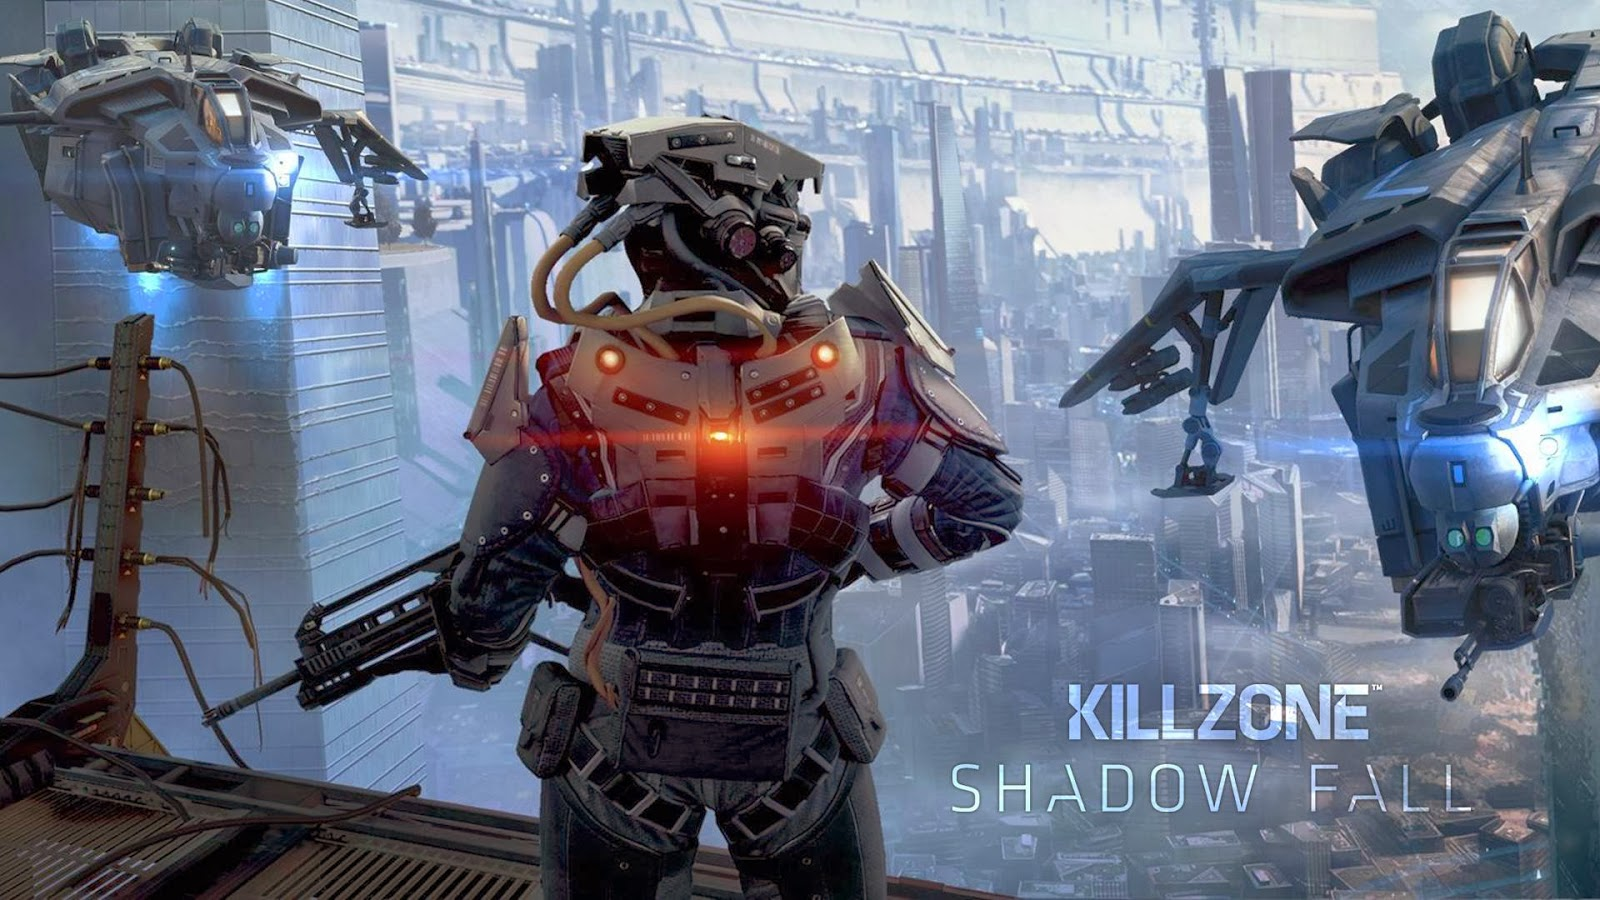 killzone shadow fall multiplayer wallpapers - Killzone Shadow Fall Multiplayer Game HD desktop